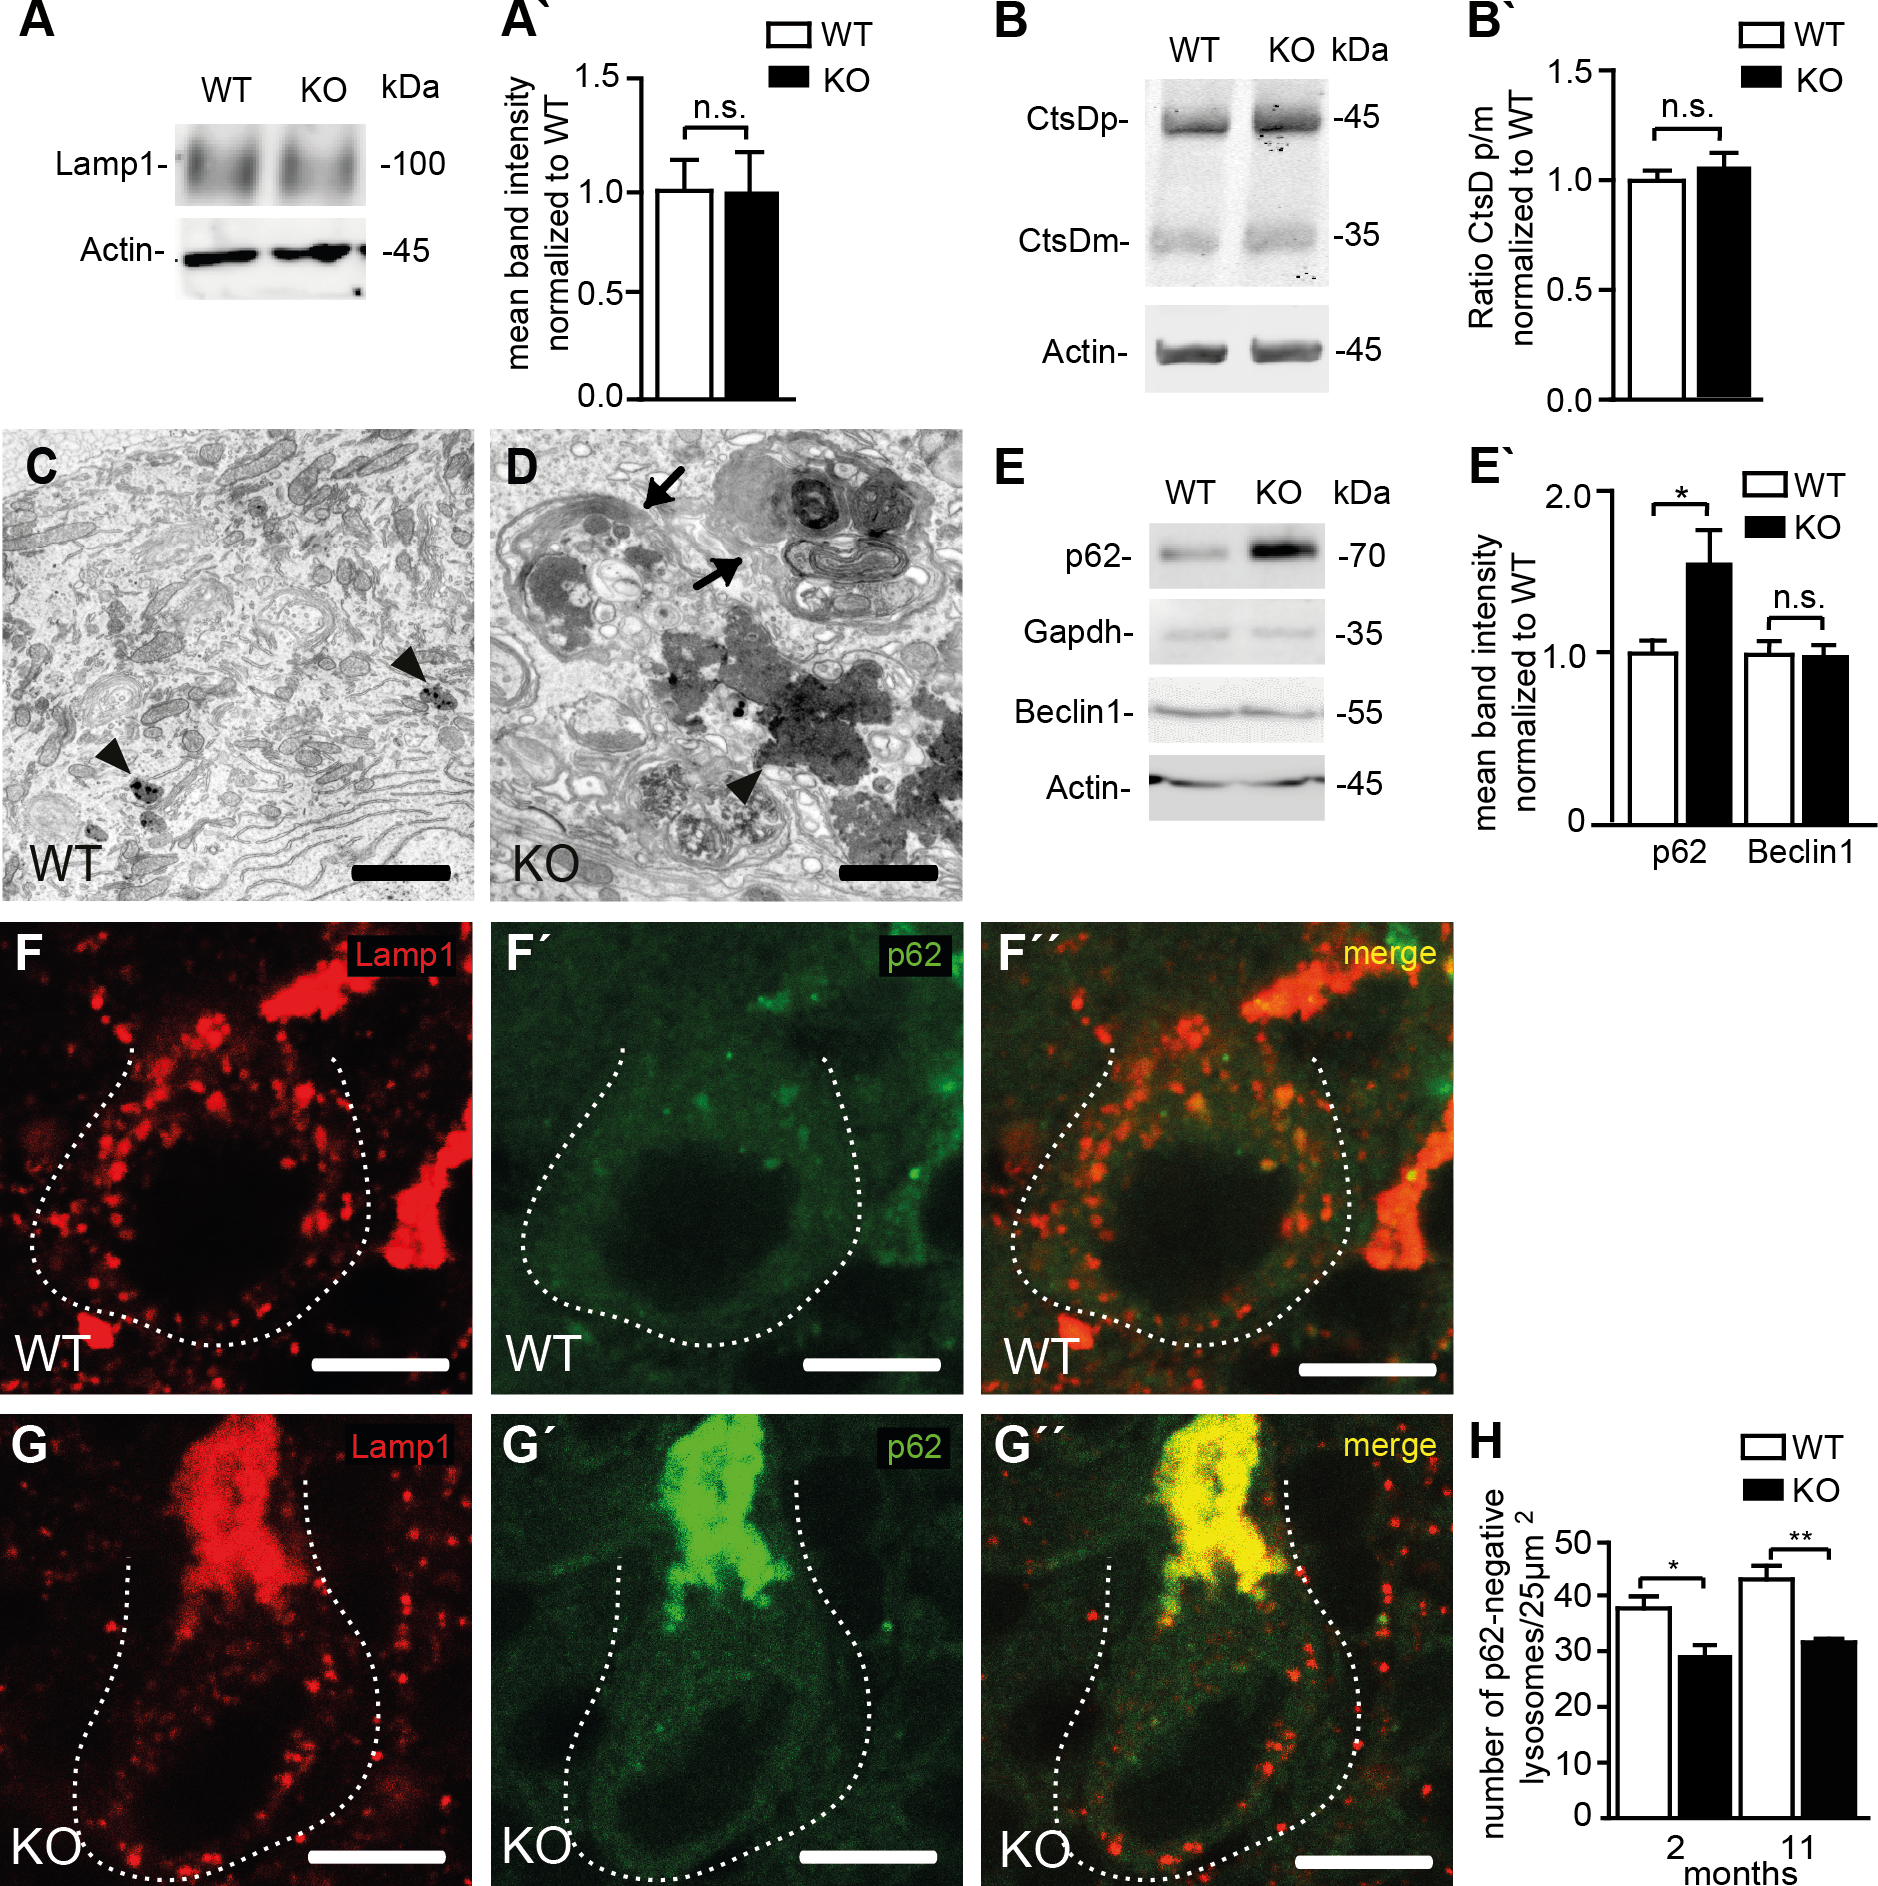 Reduced lysosome numbers in Purkinje cells of Spatacsin knockout mice are consistent with impaired autophagic lysosome reformation.